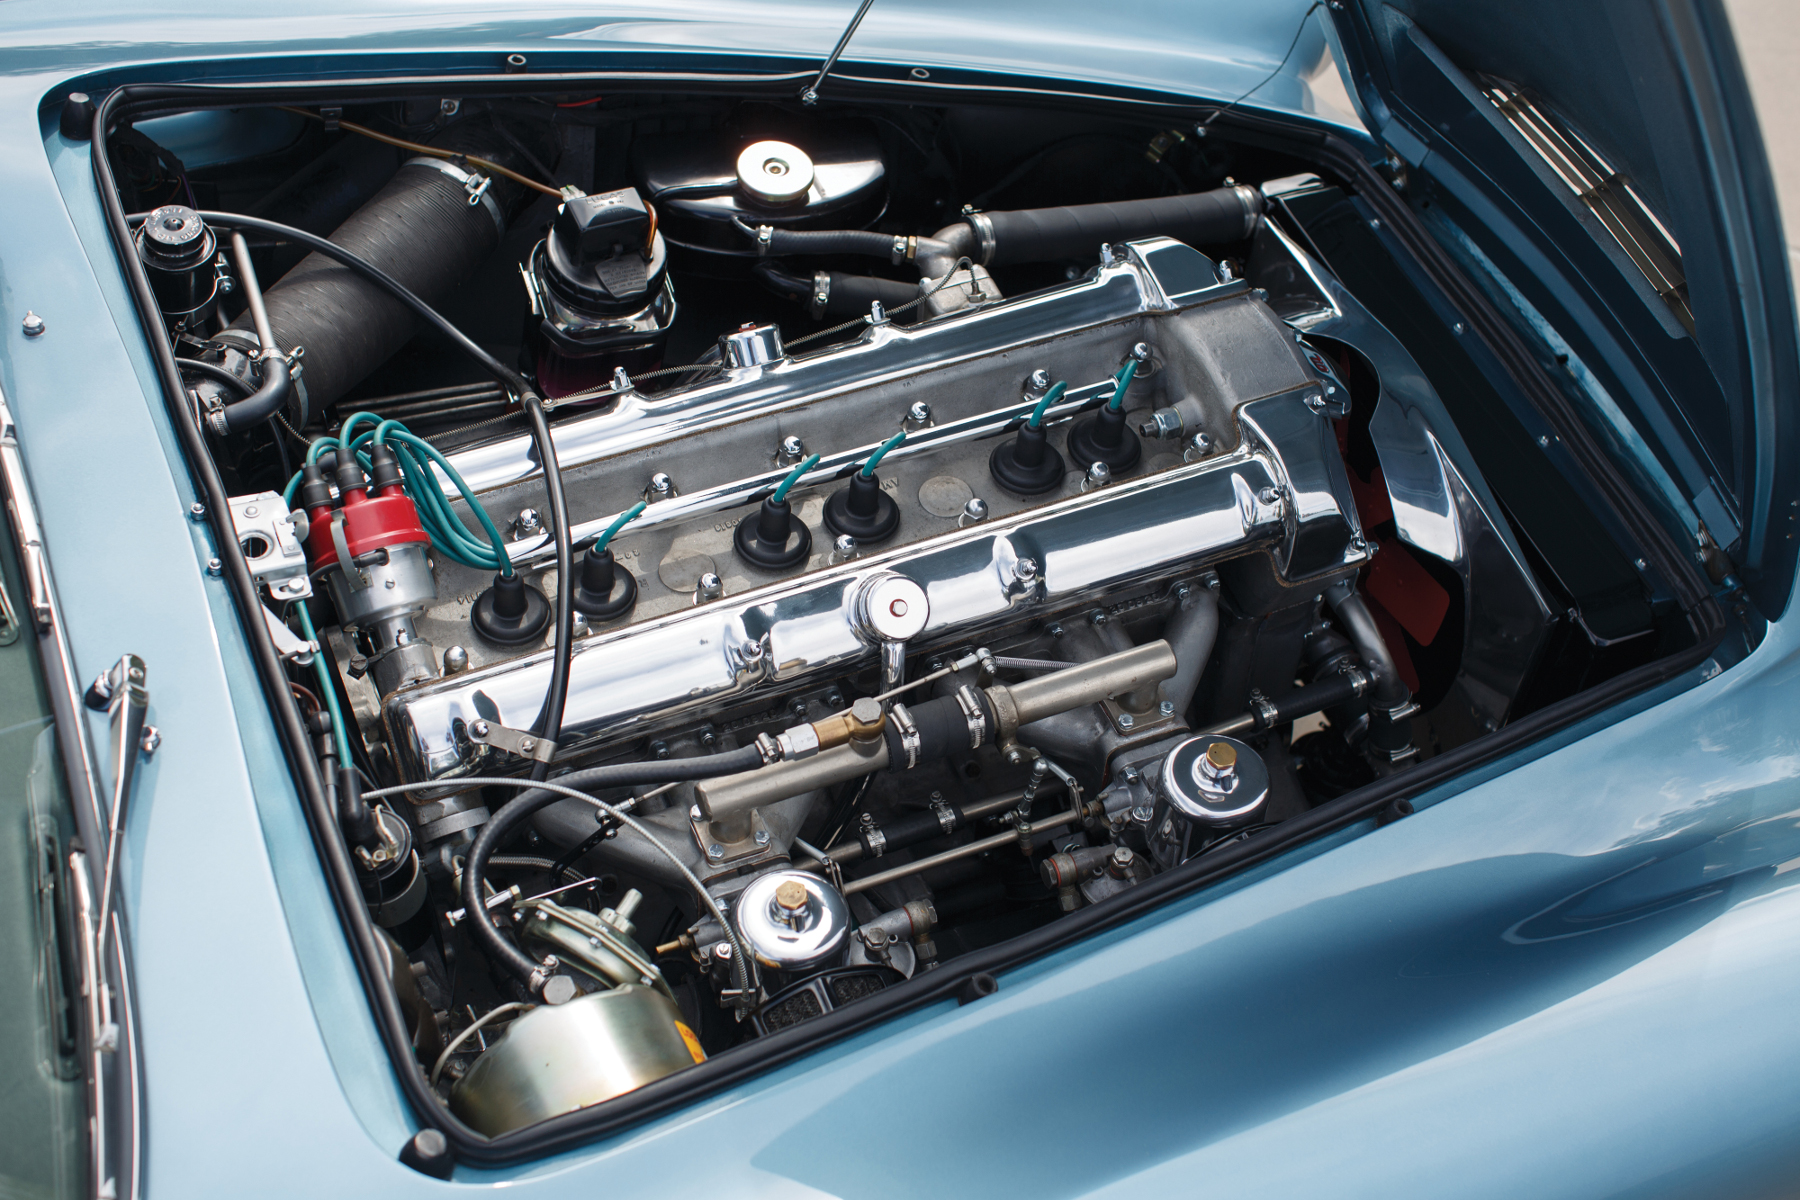 The Tadek Marek 3.9 liter in-line six cylinder of the Aston Martin DB4 which replaced the Lagonda I6 of the DB3.